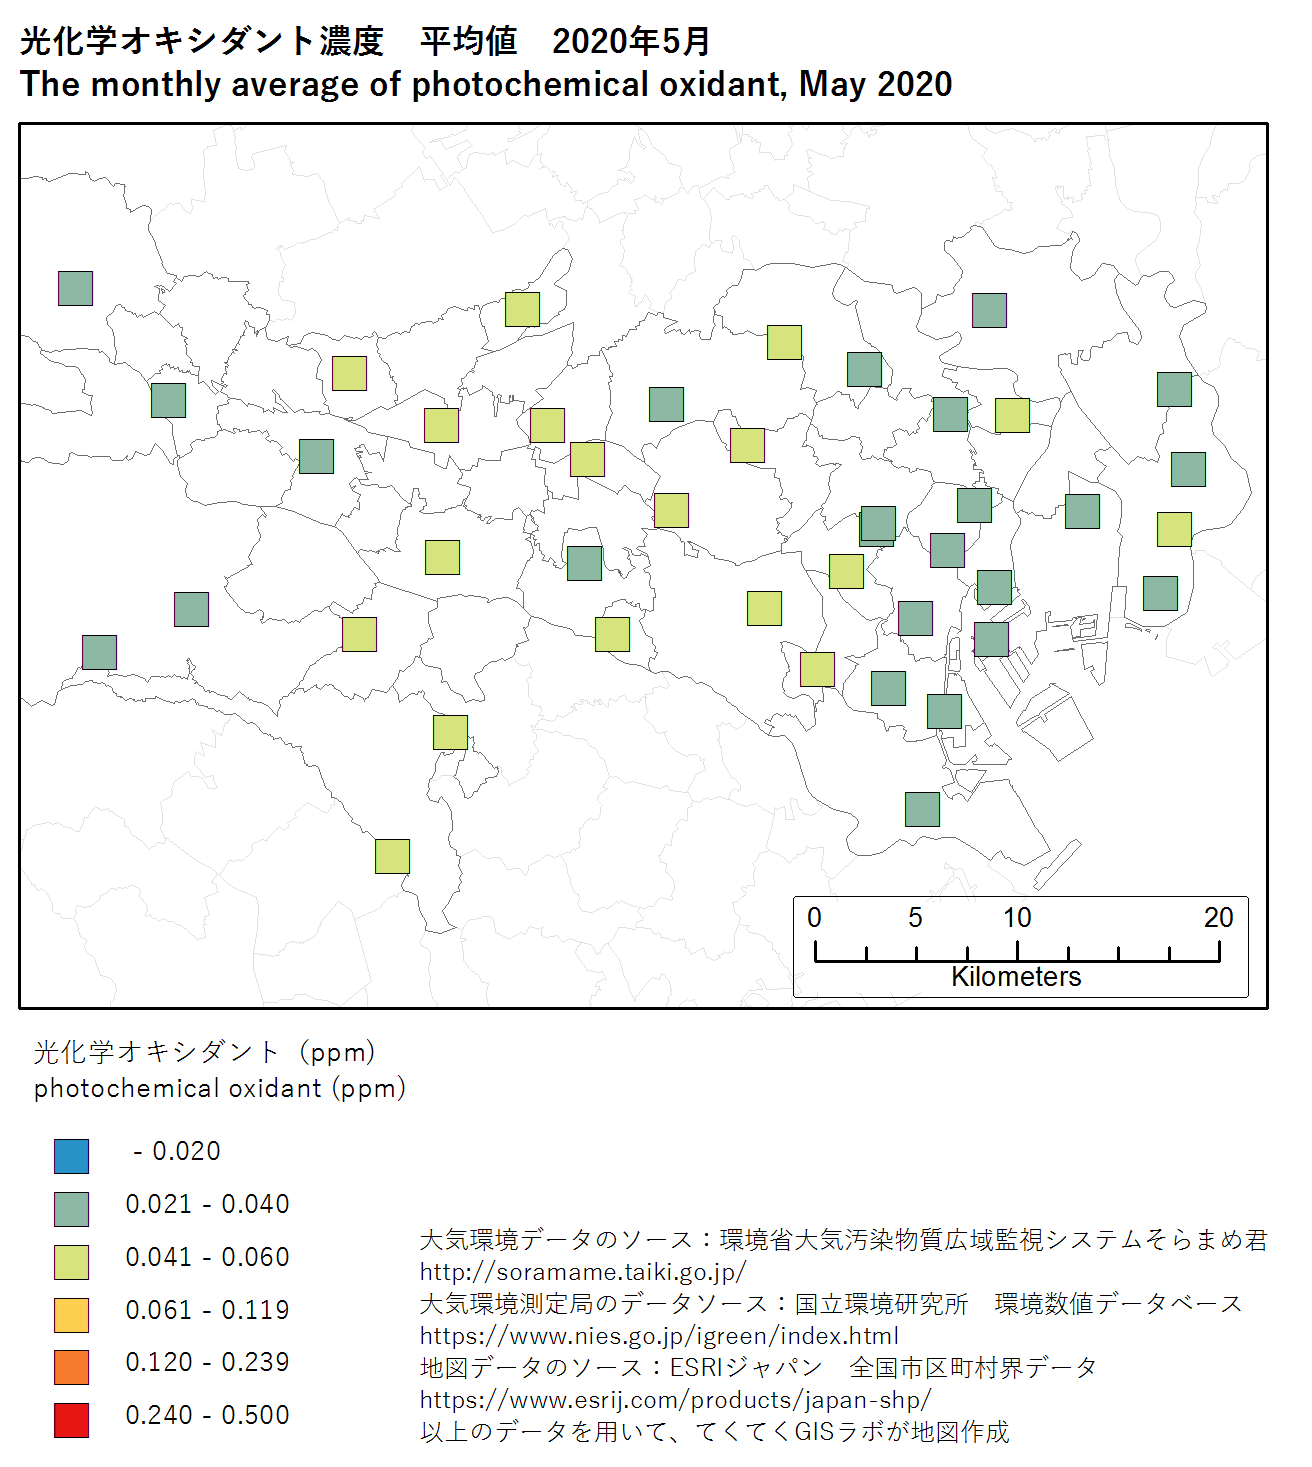 photochromic oxidant map (ave) of Tokyo, May 2020